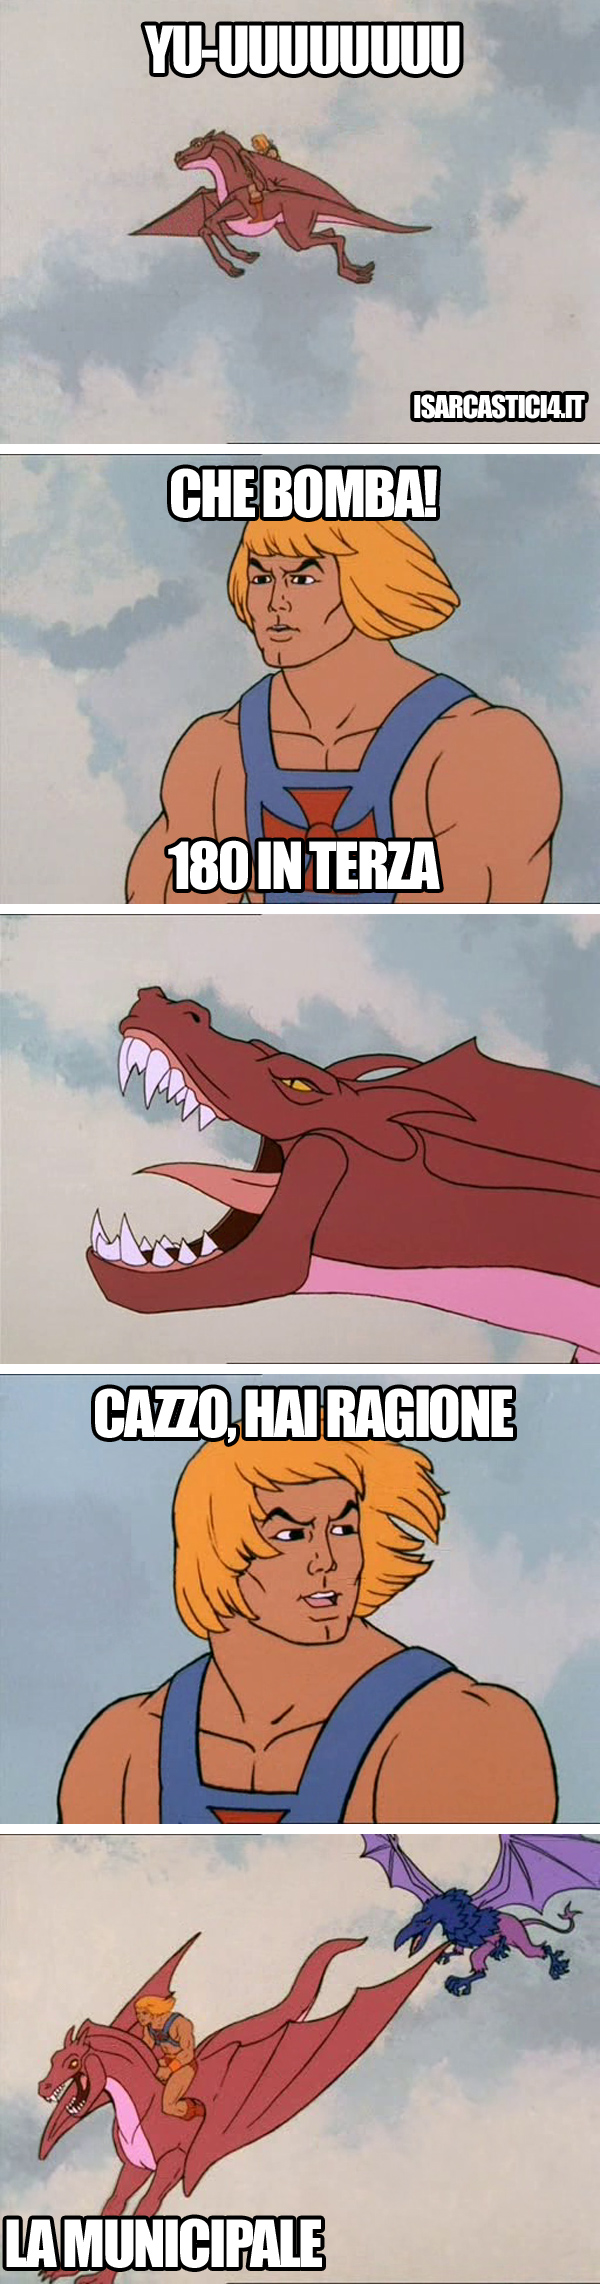 MOTU, Masters Of The Universe meme ita - Yu-uuuu